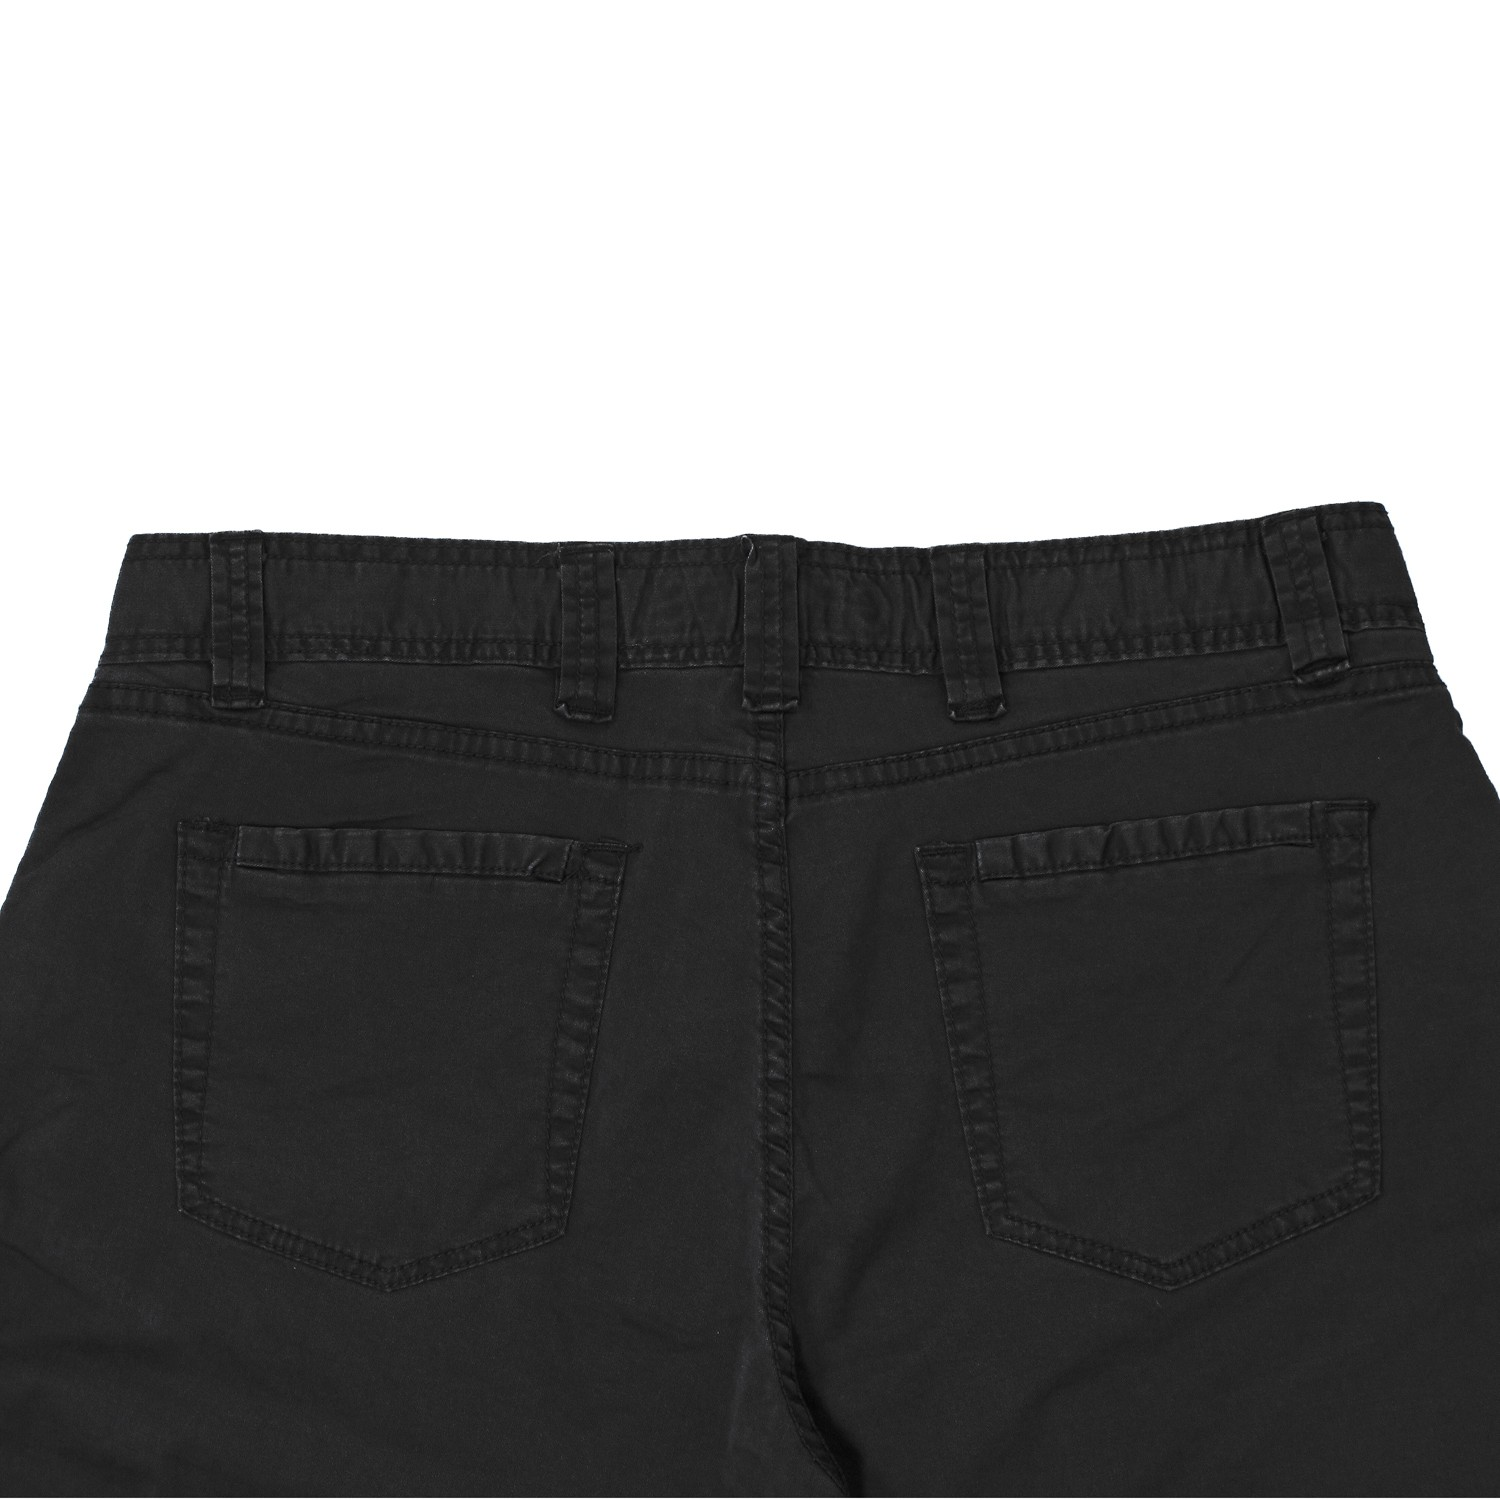 Detail Image to Pocket pants in black by Greyes in plus sizes until 64